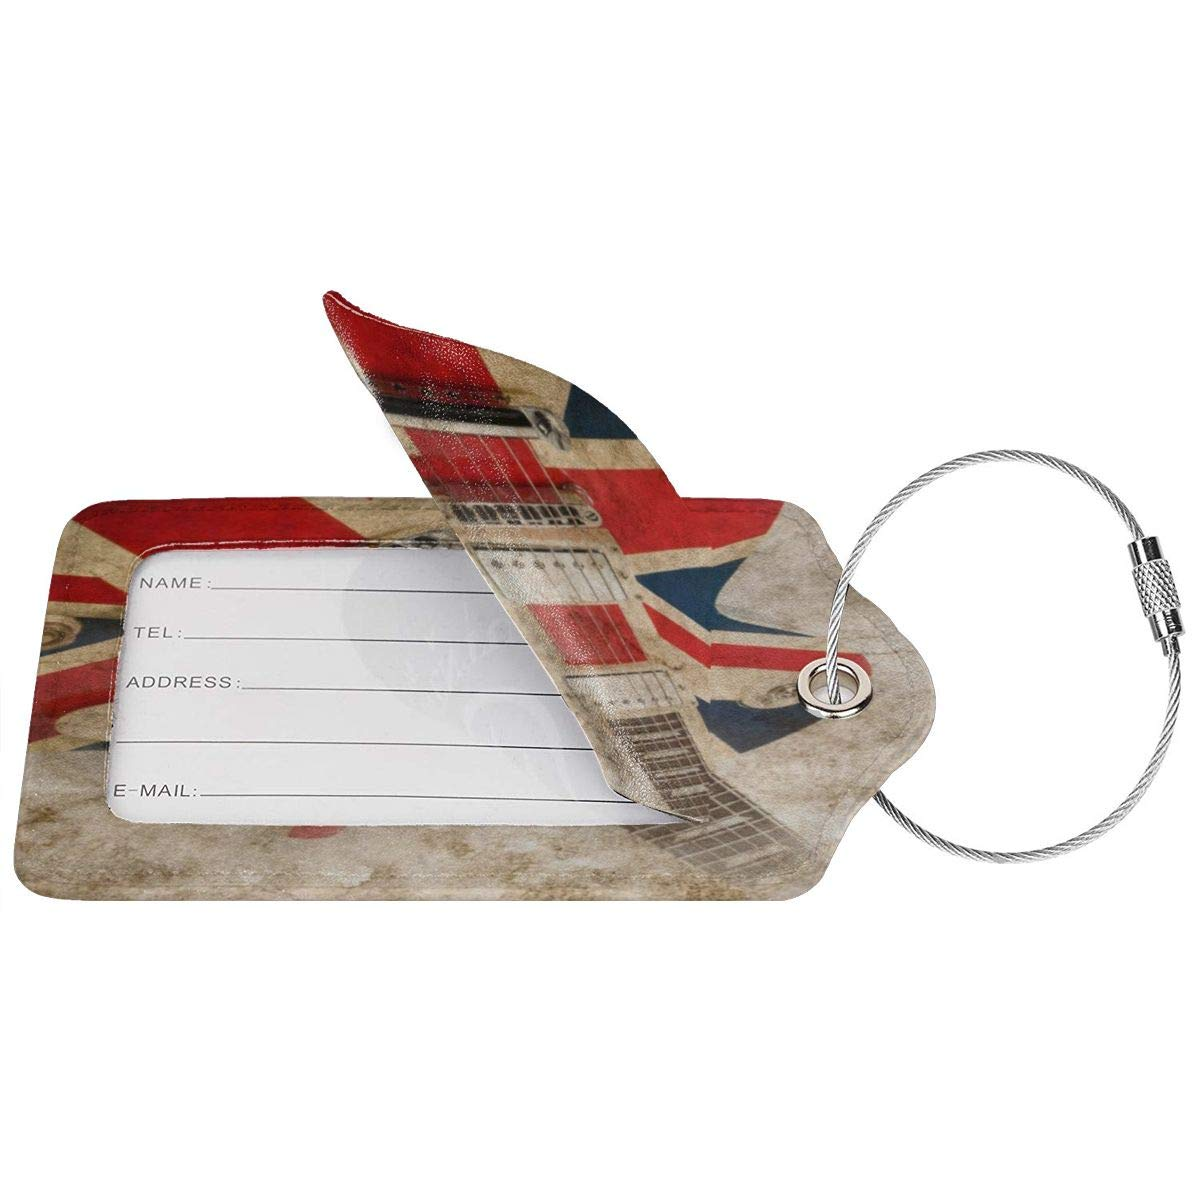 Vintage Guitar Music British Flag Leather Luggage Tags Personalized Address Card With Privacy Flap